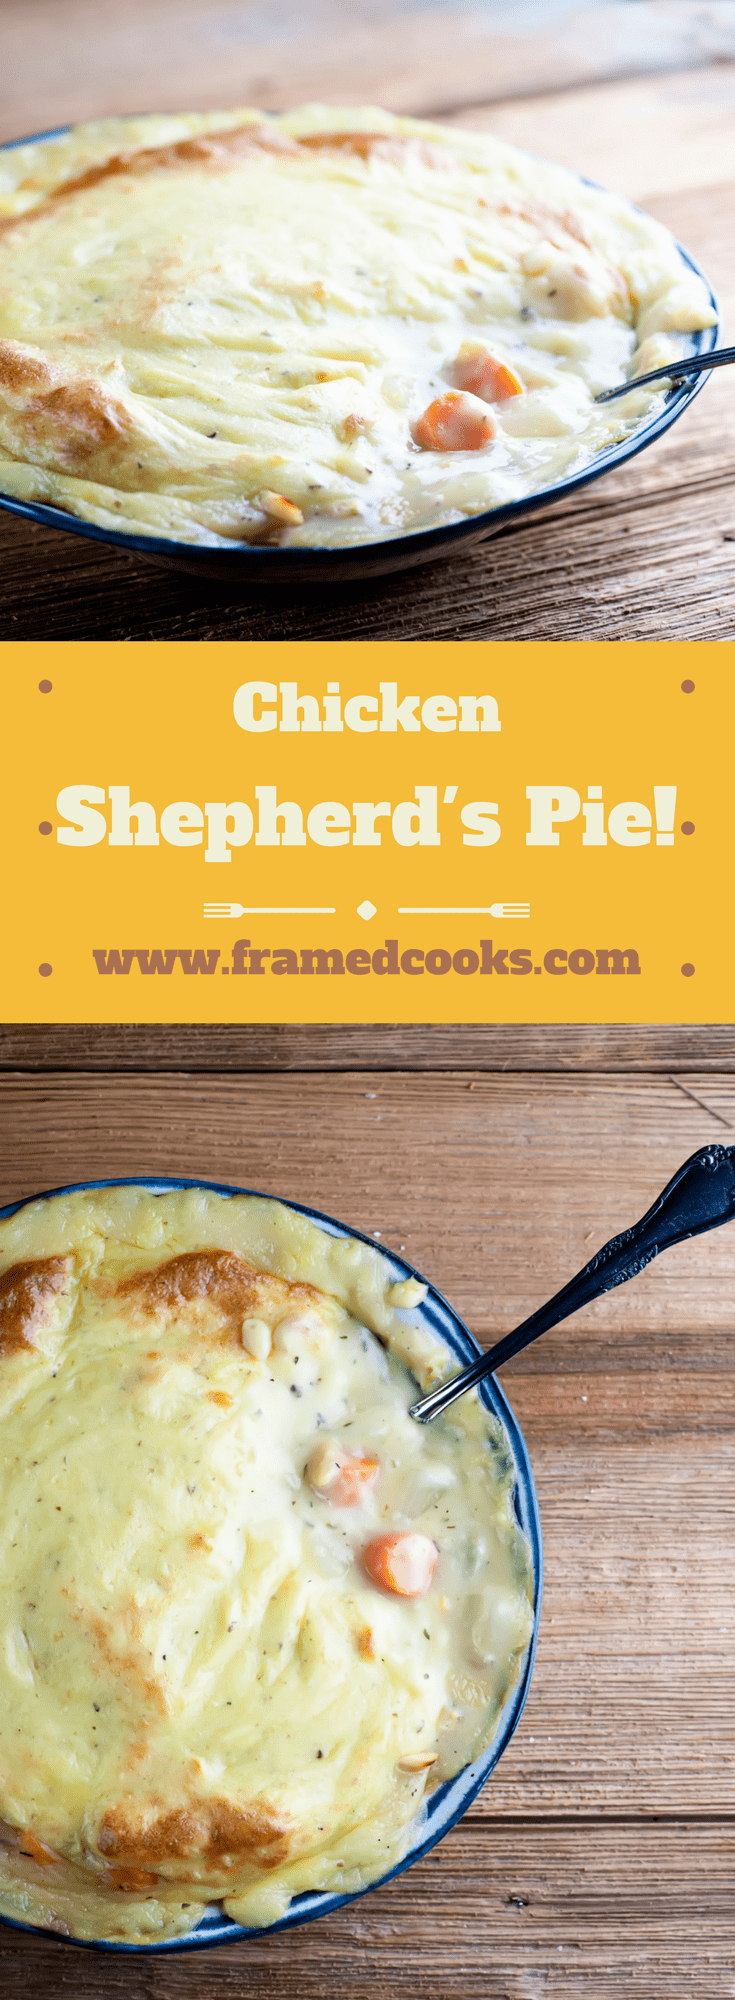 This easy recipe for chicken shepherd's pie converts the classic beef supper to a lighter chicken version.  Comfort food to the max!